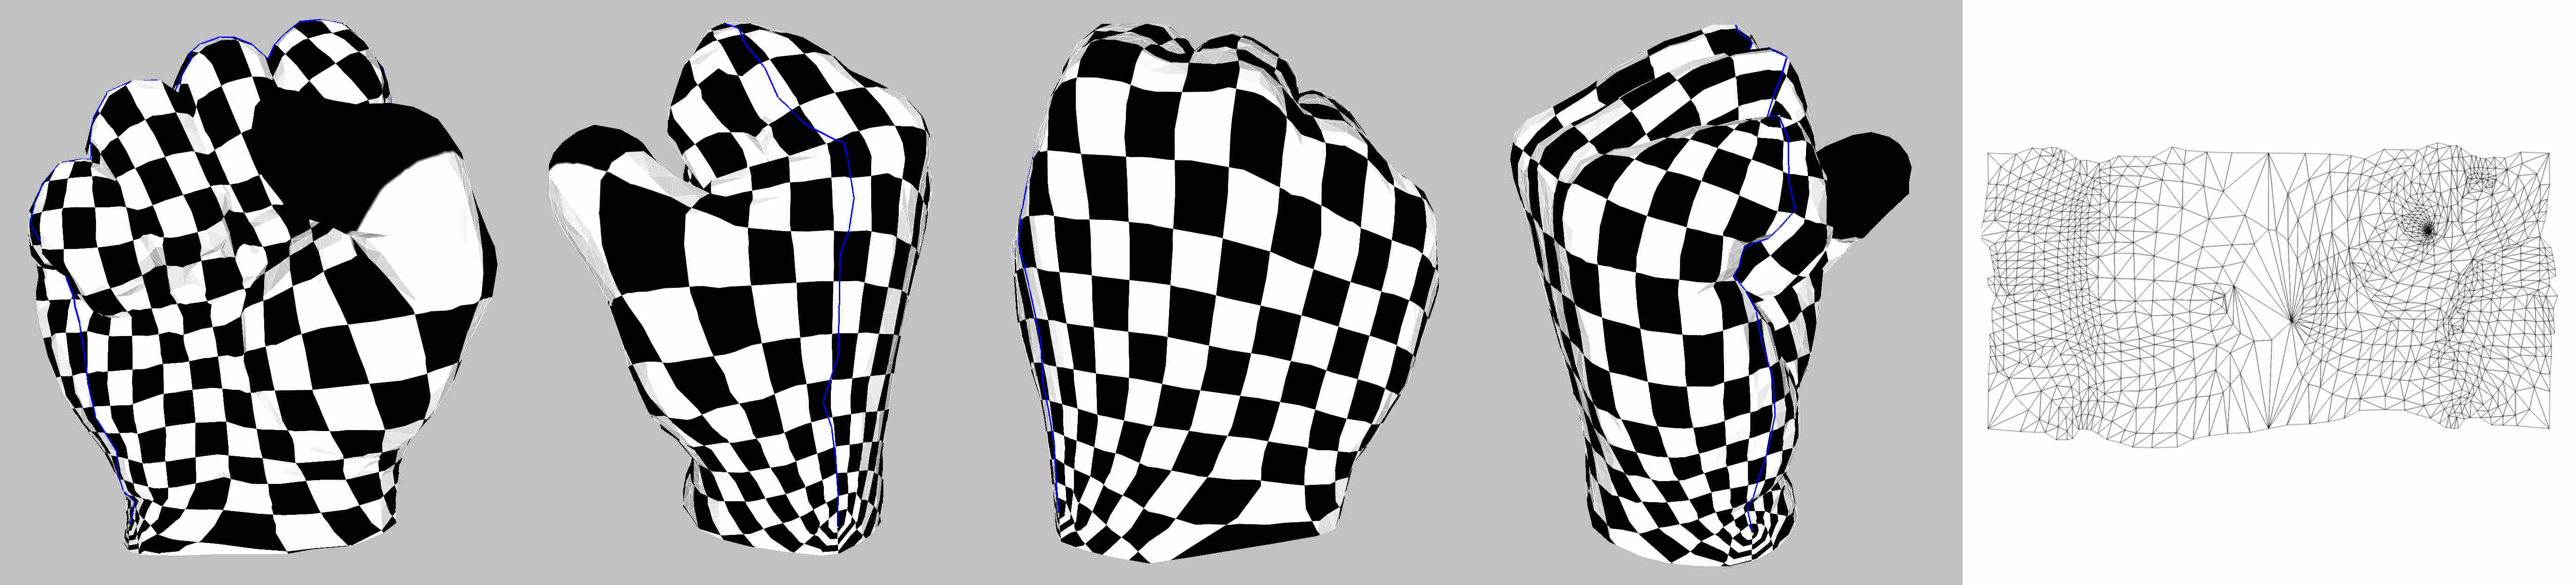 CGAL 4 14 - Planar Parameterization of Triangulated Surface Meshes